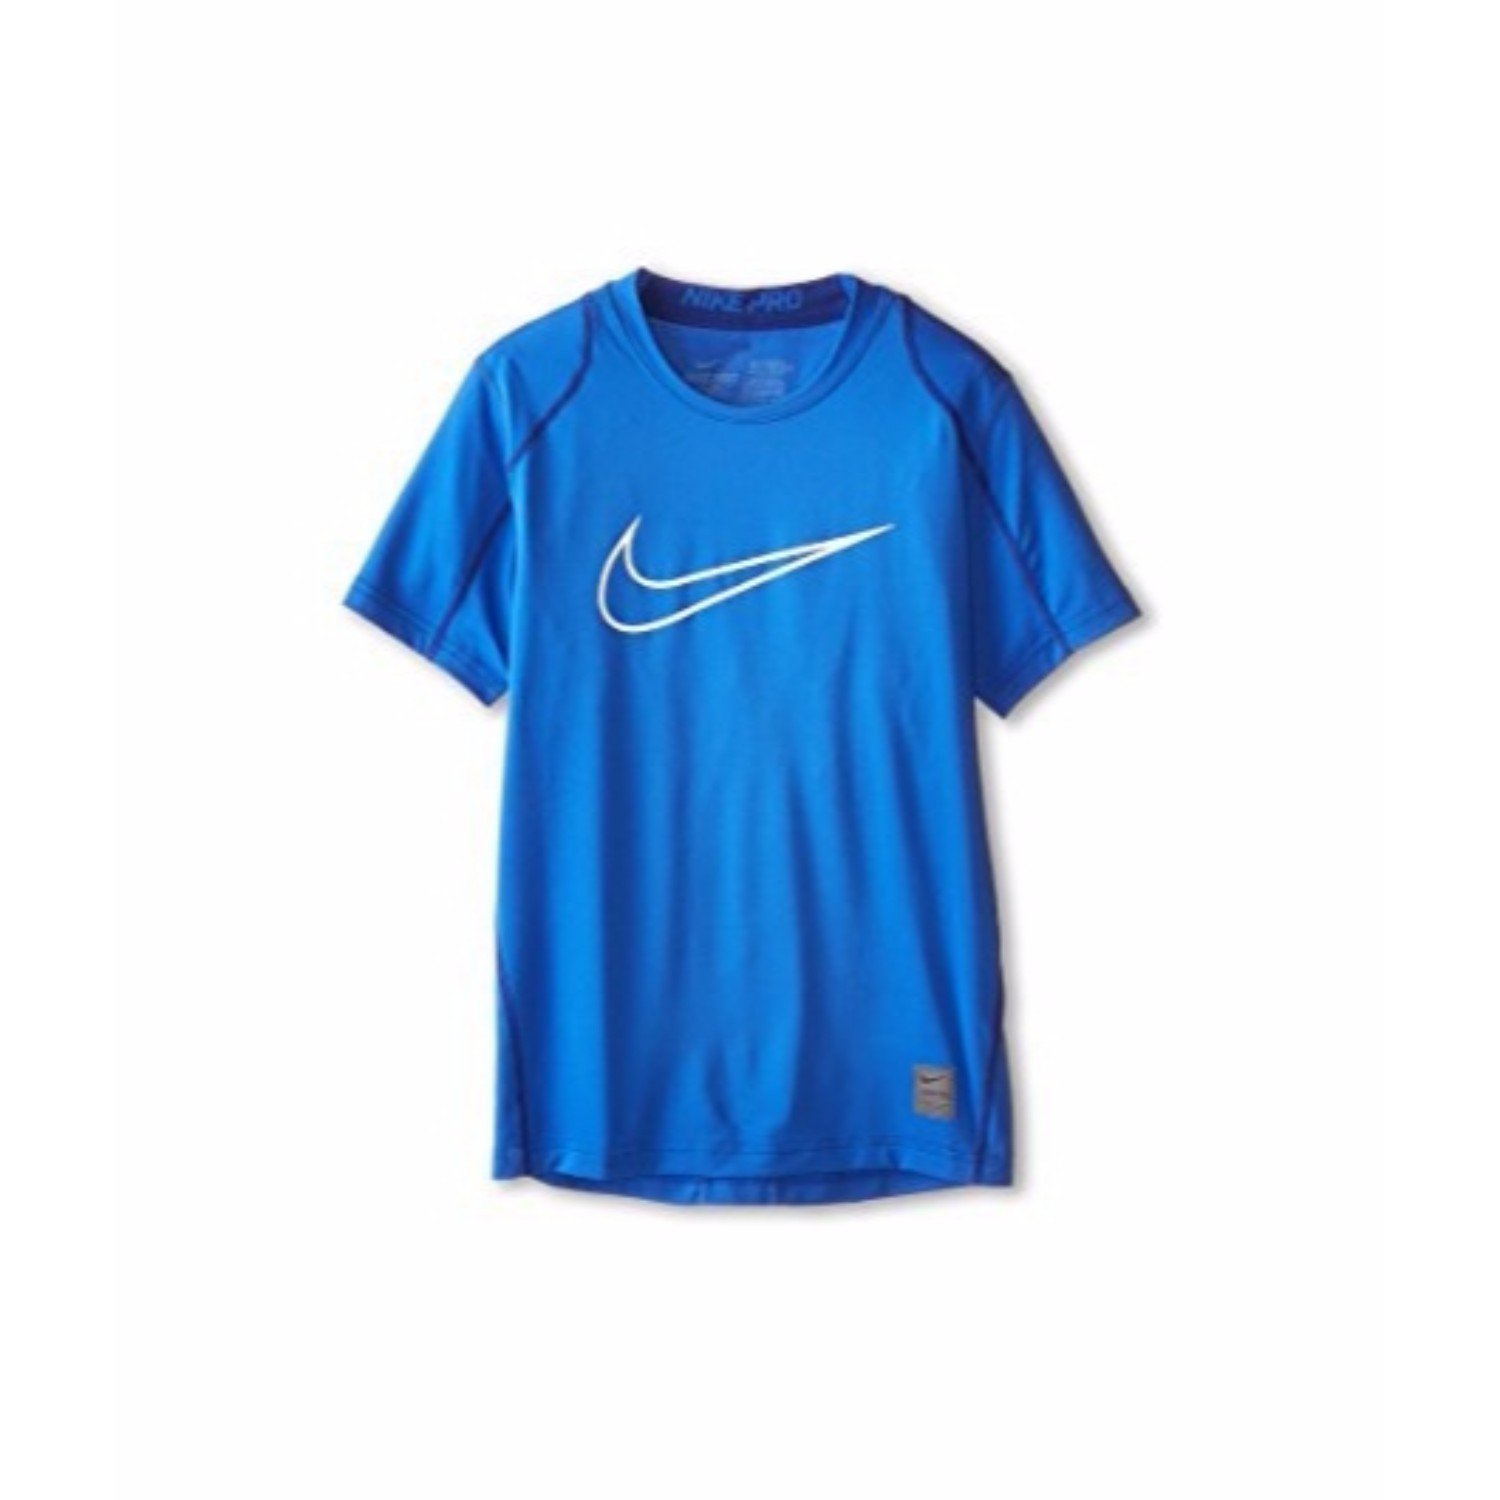 Nike Pro Cool HBR Fitted Boys Short-Sleeve Top (X-Large, Game Royal/White) (3 Pack) by NIKE